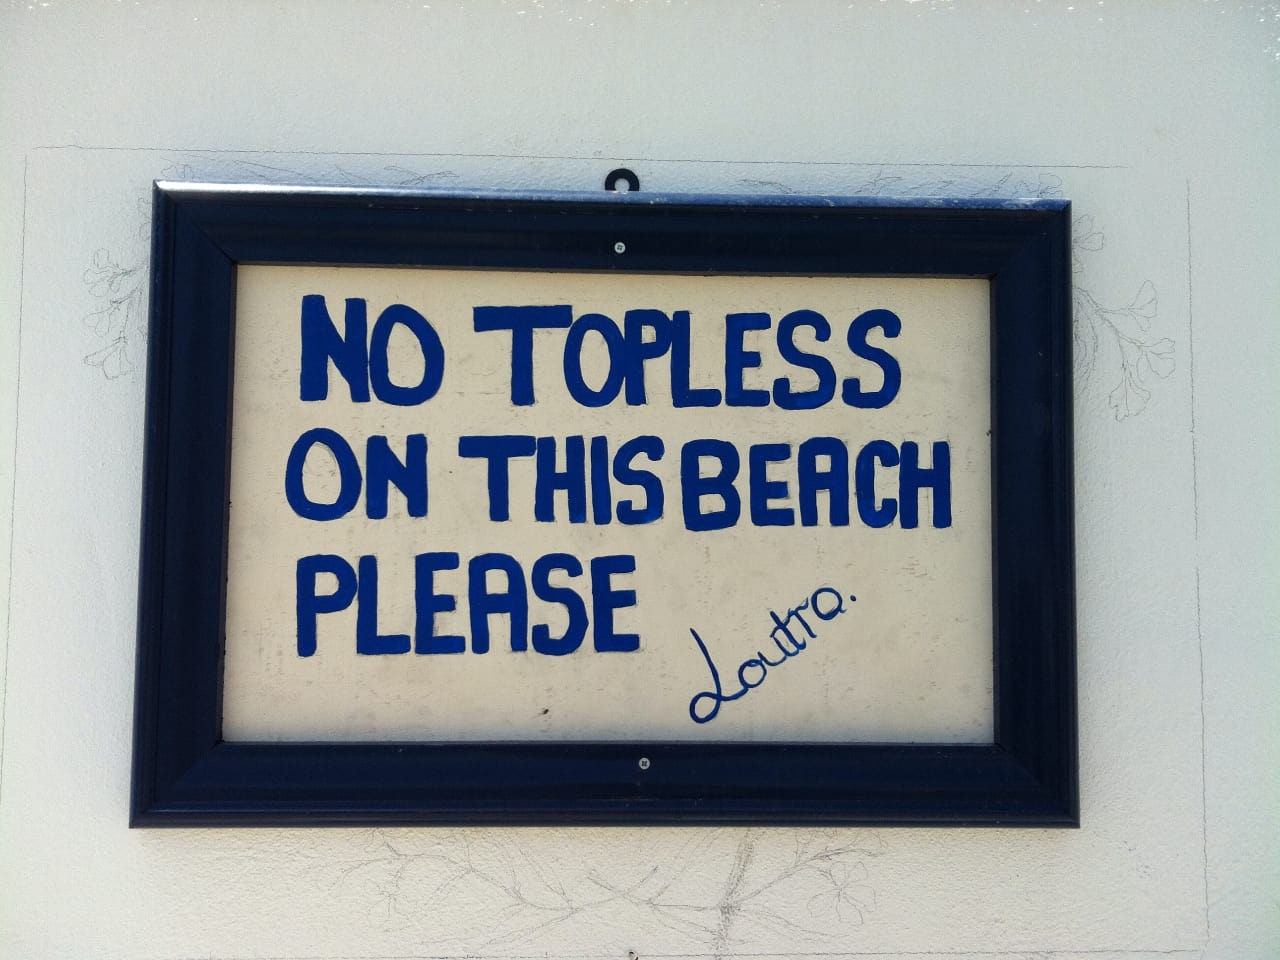 No Topless on this Beach Please